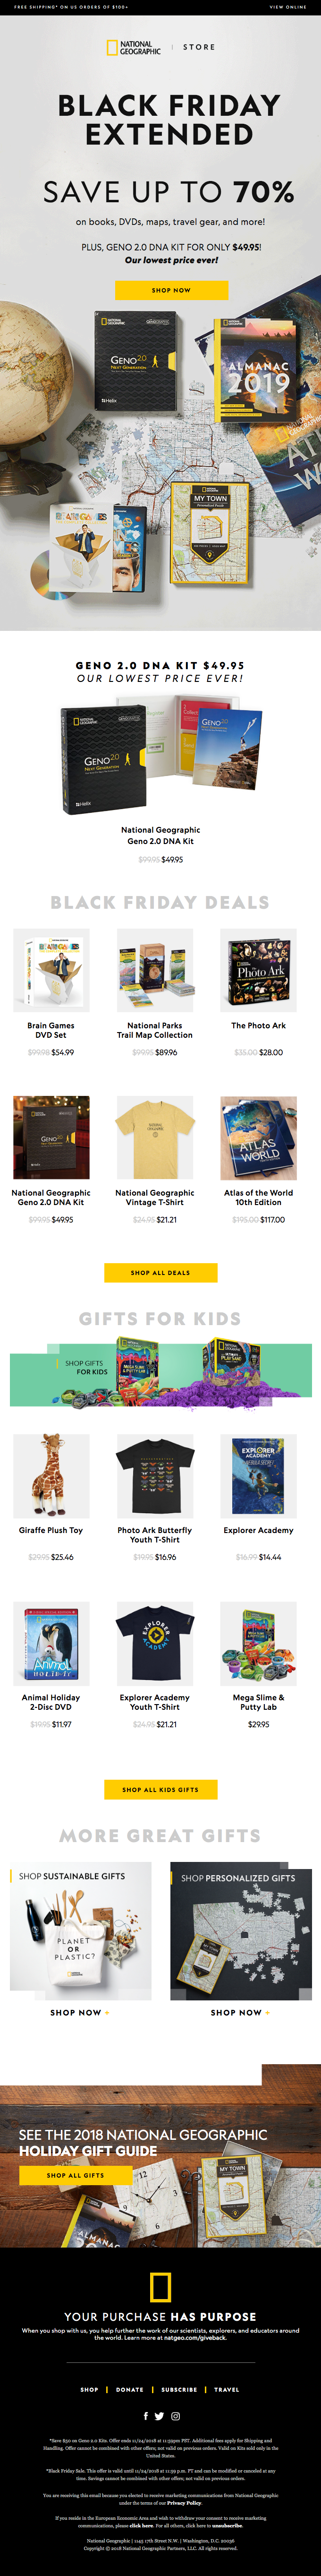 Black Friday Extended – Geno 2.0 for only $49.95 | Save up to 70% on Nat Geo gifts!